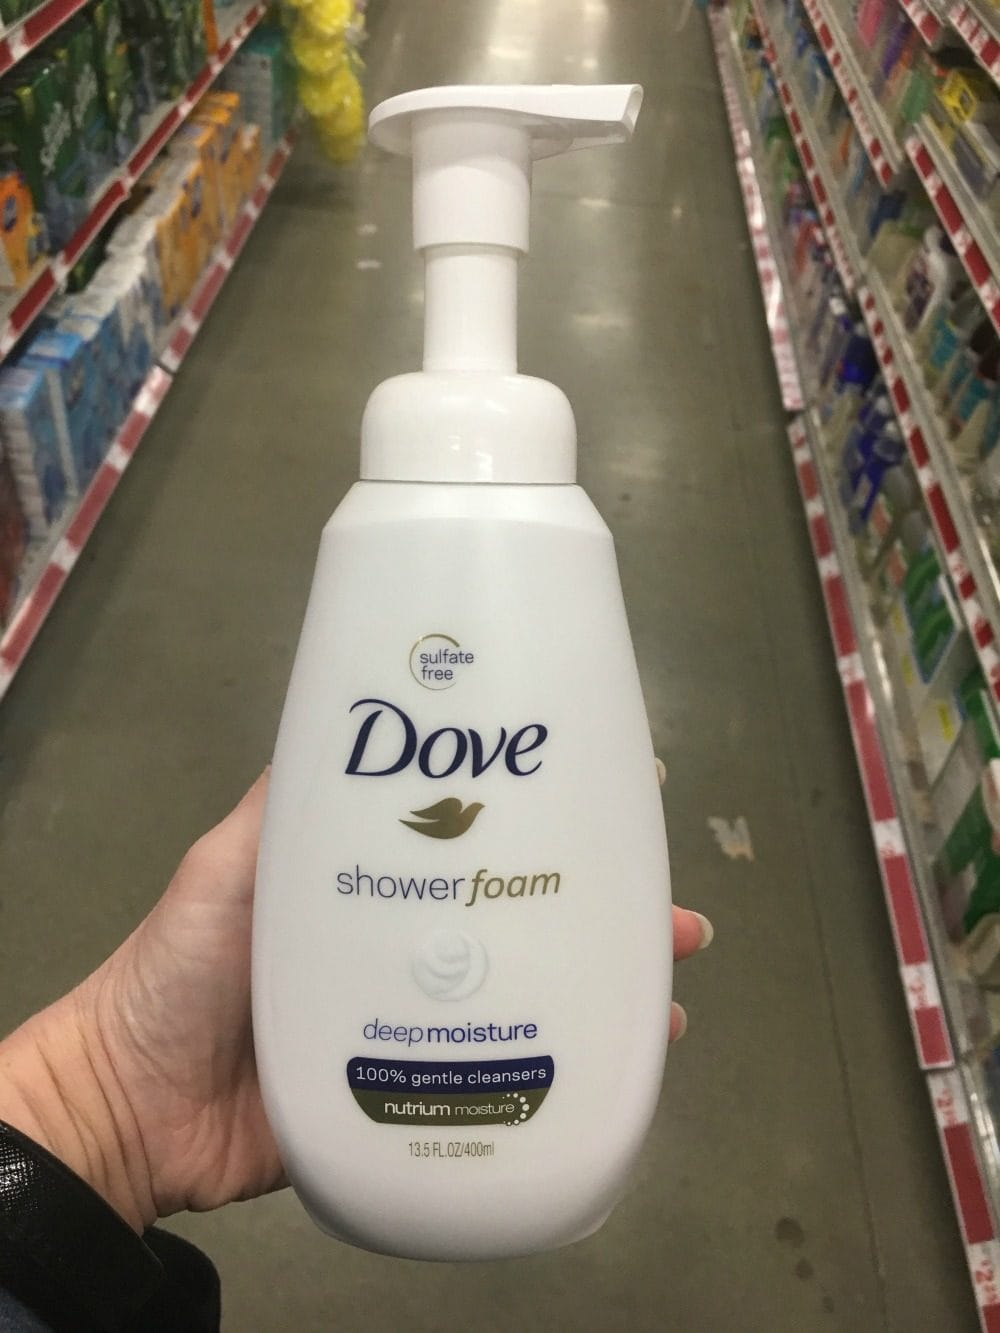 Dove shower foam found at Family Dollar